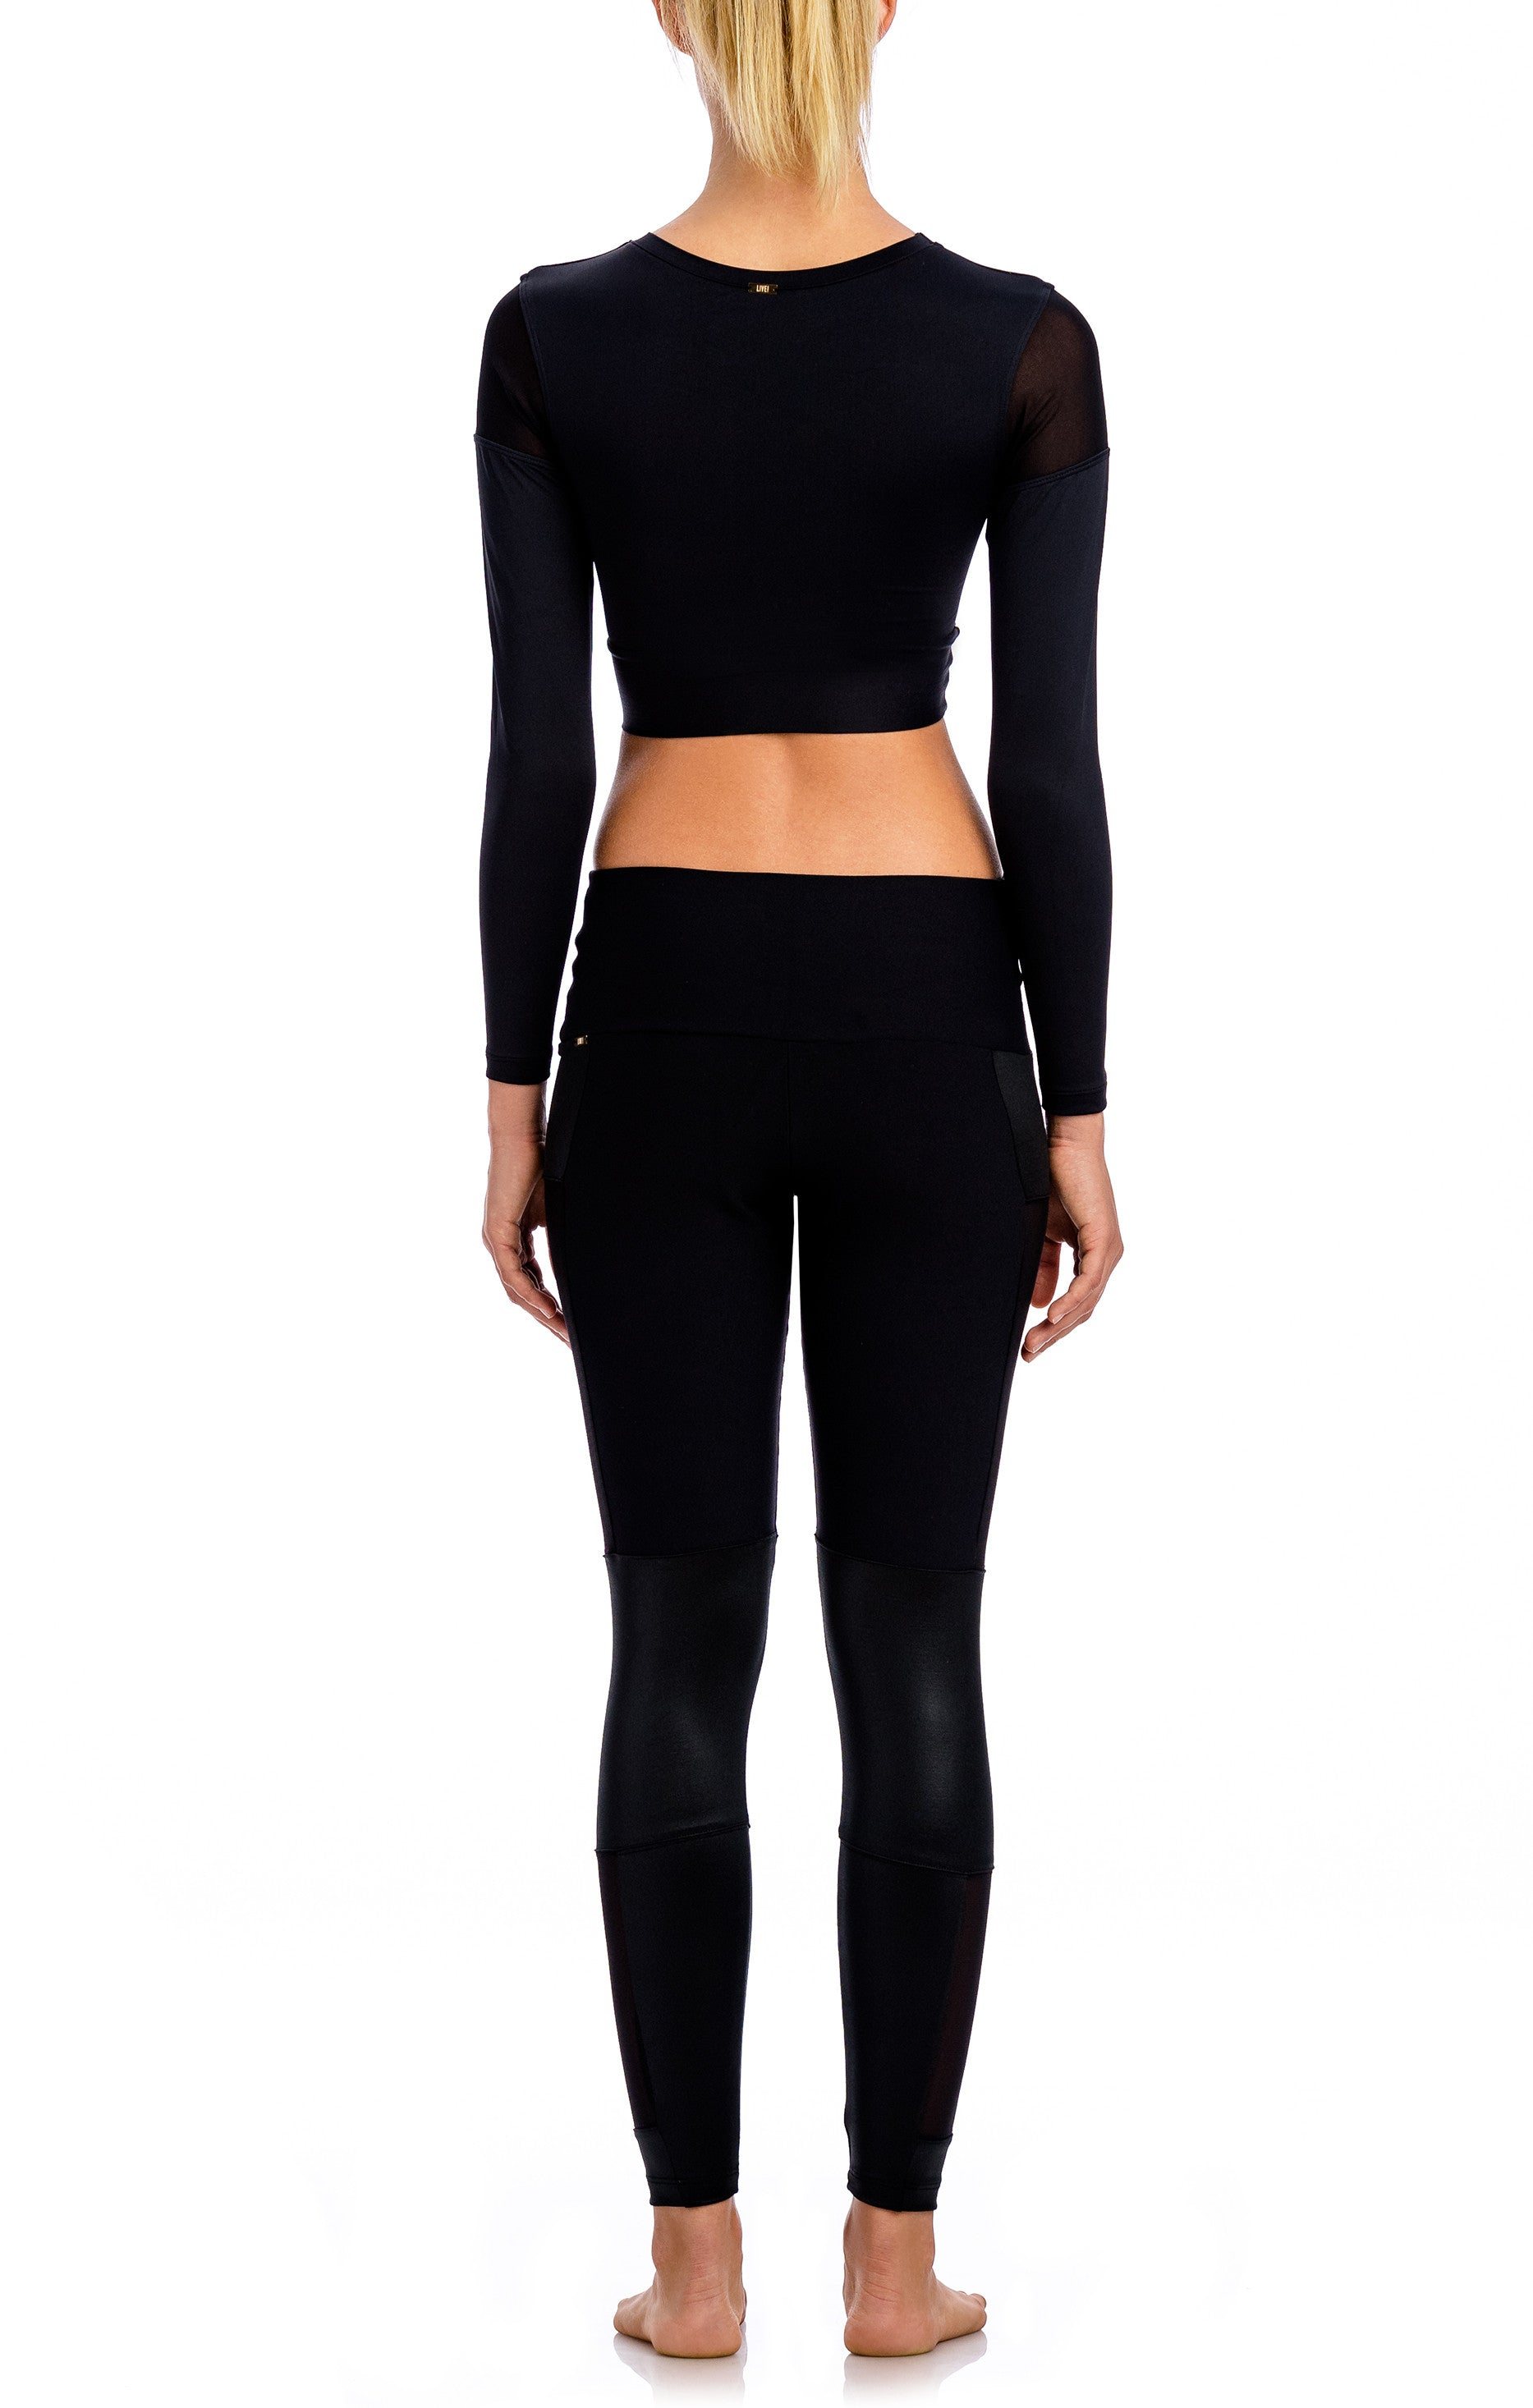 Bio Dance Cropped L/S Top - Workout Tops